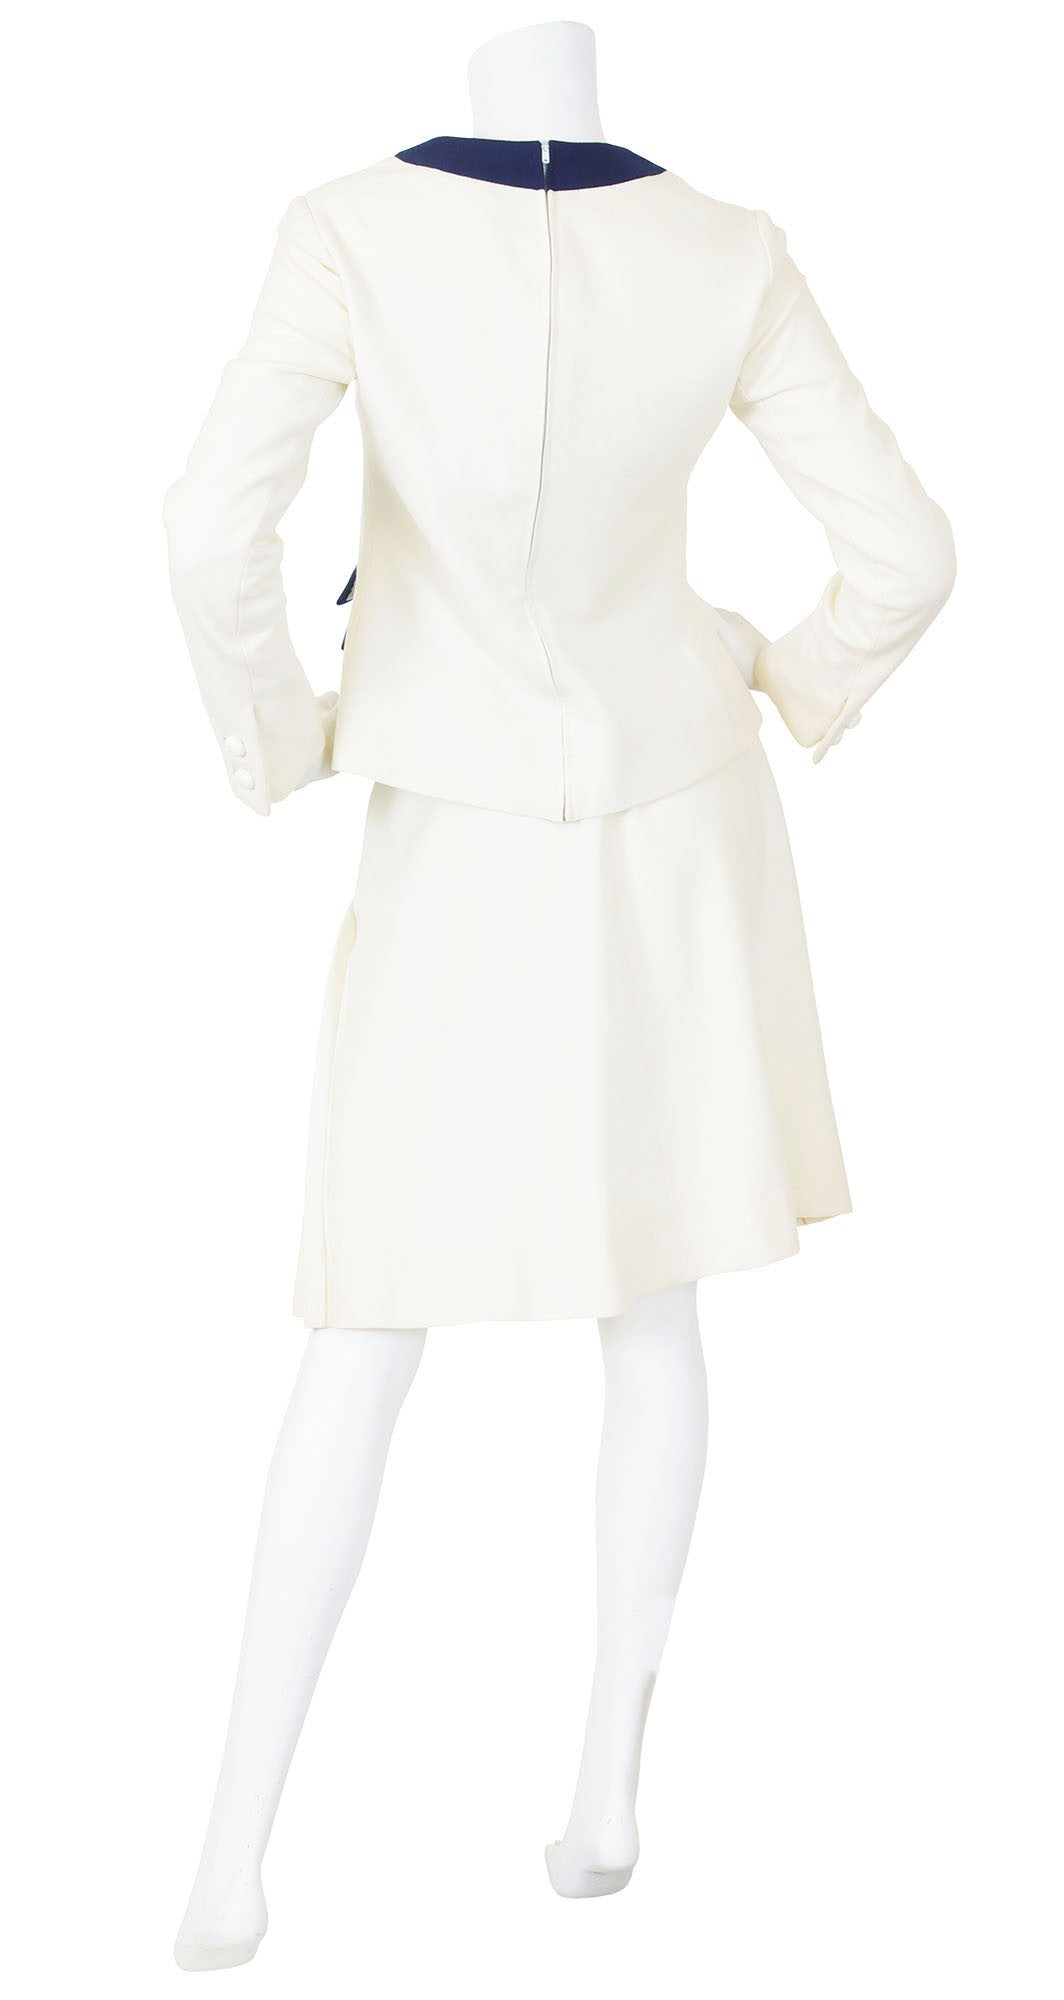 c. 1968 Mod Cream Wool Top and Pleated Skirt Set